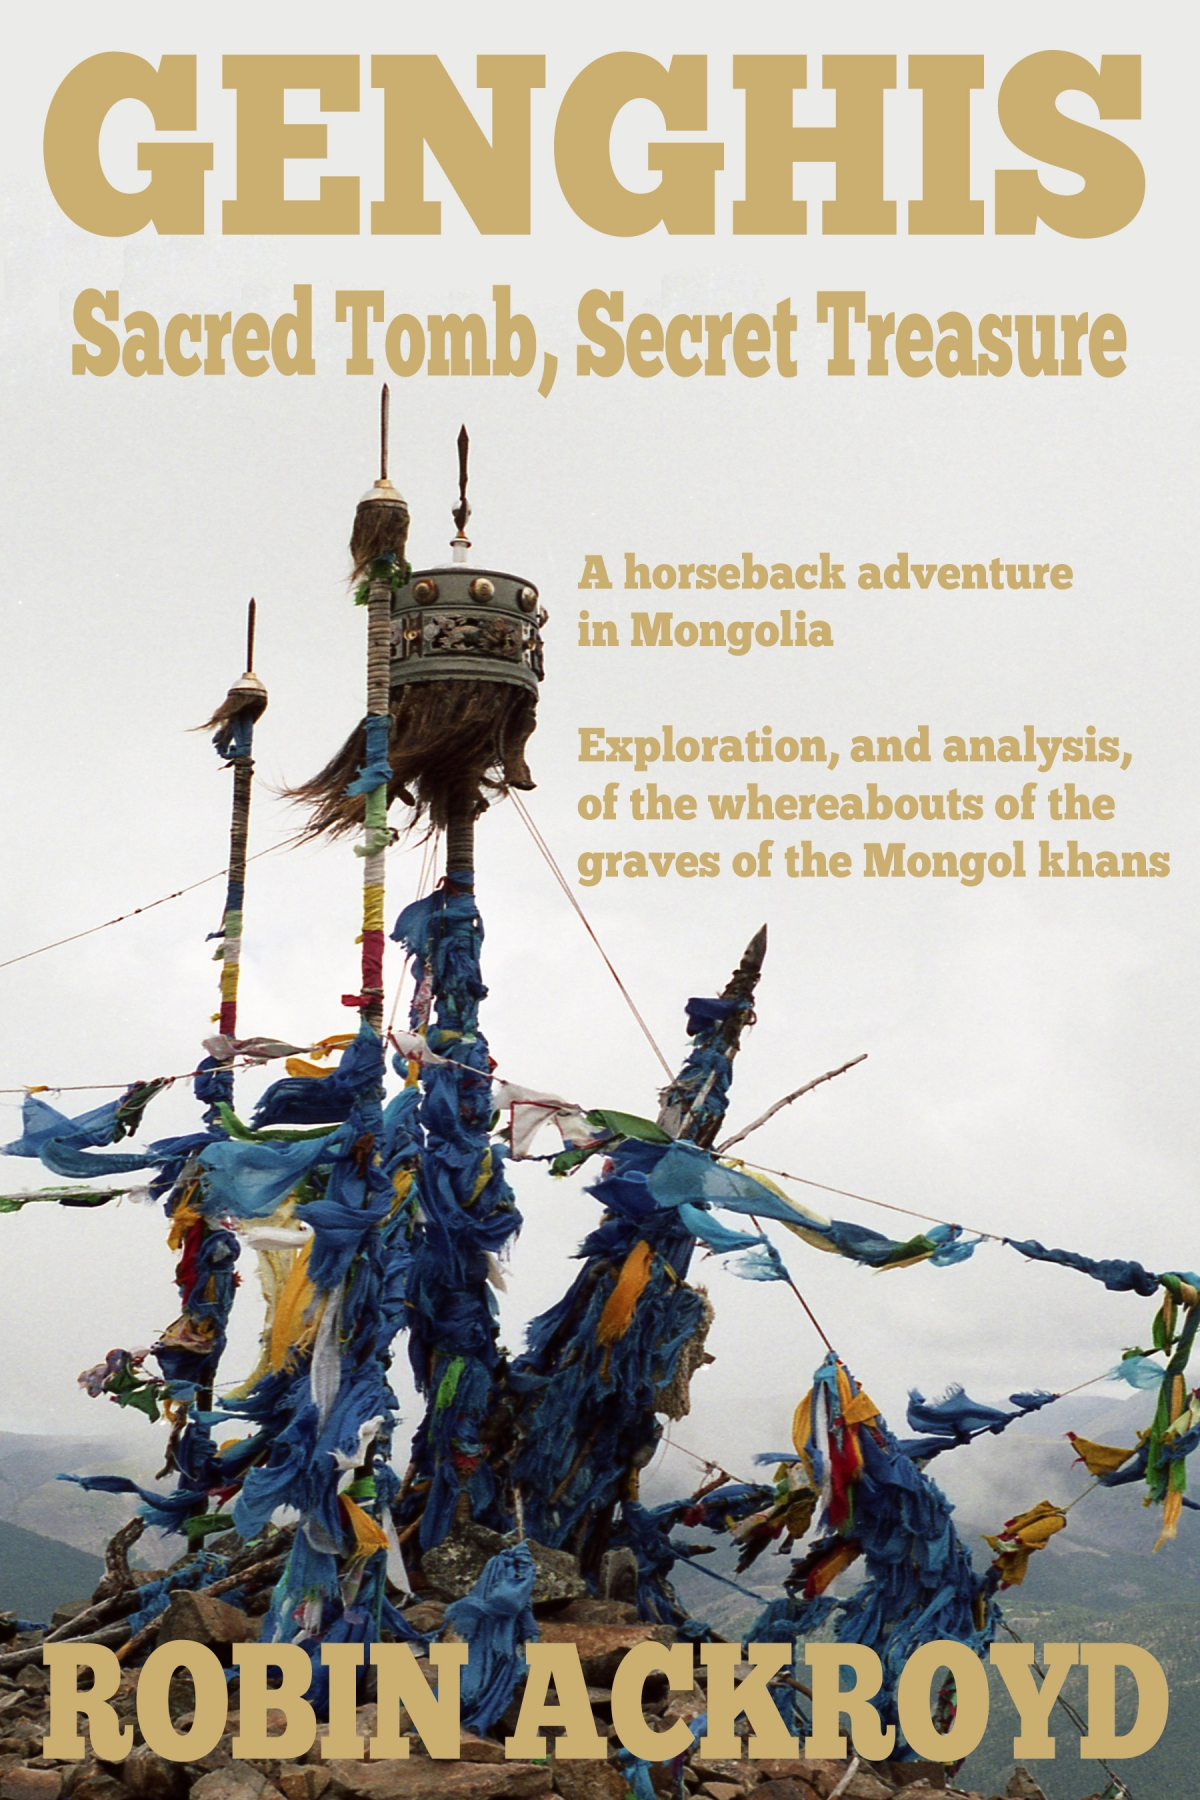 Genghis: Sacred Tomb, Secret Treasure